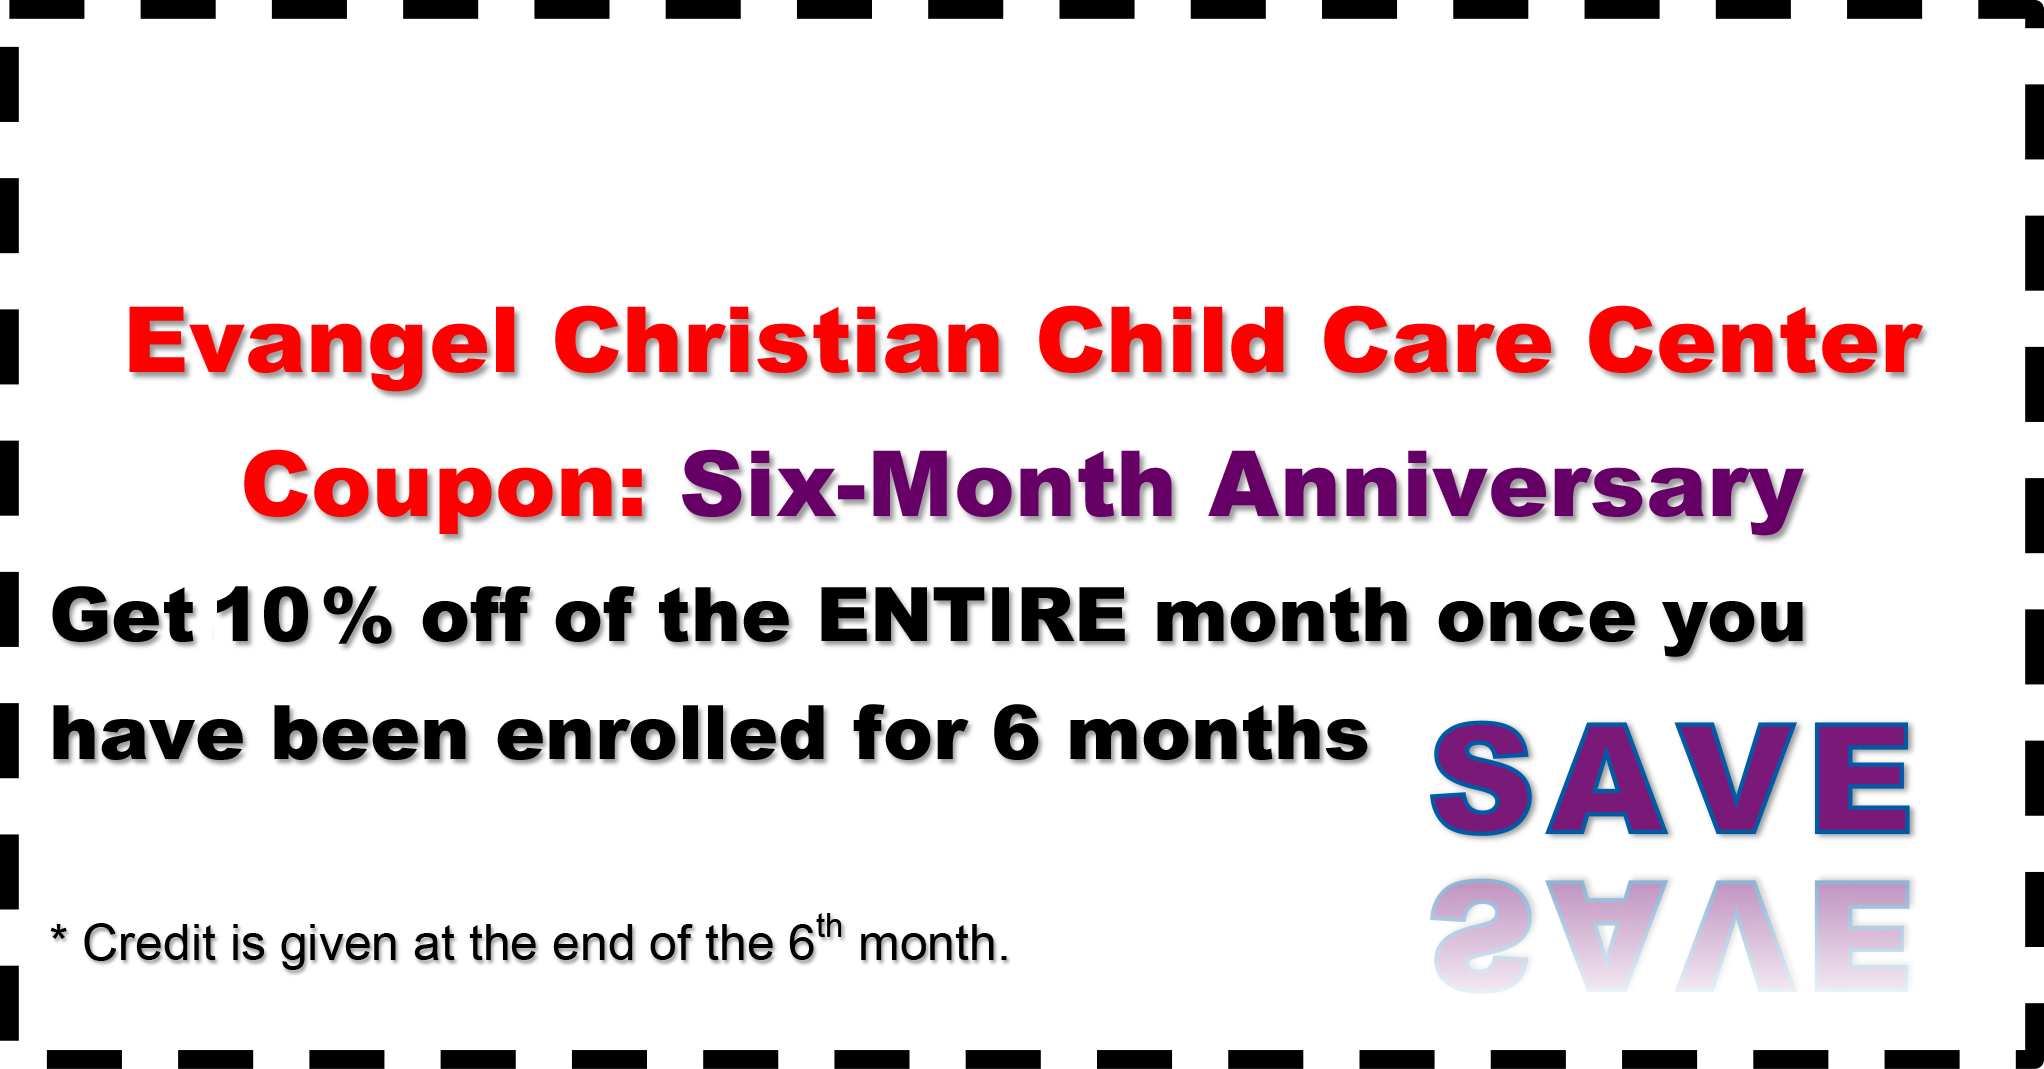 Six-Month Anniversary - Coupon